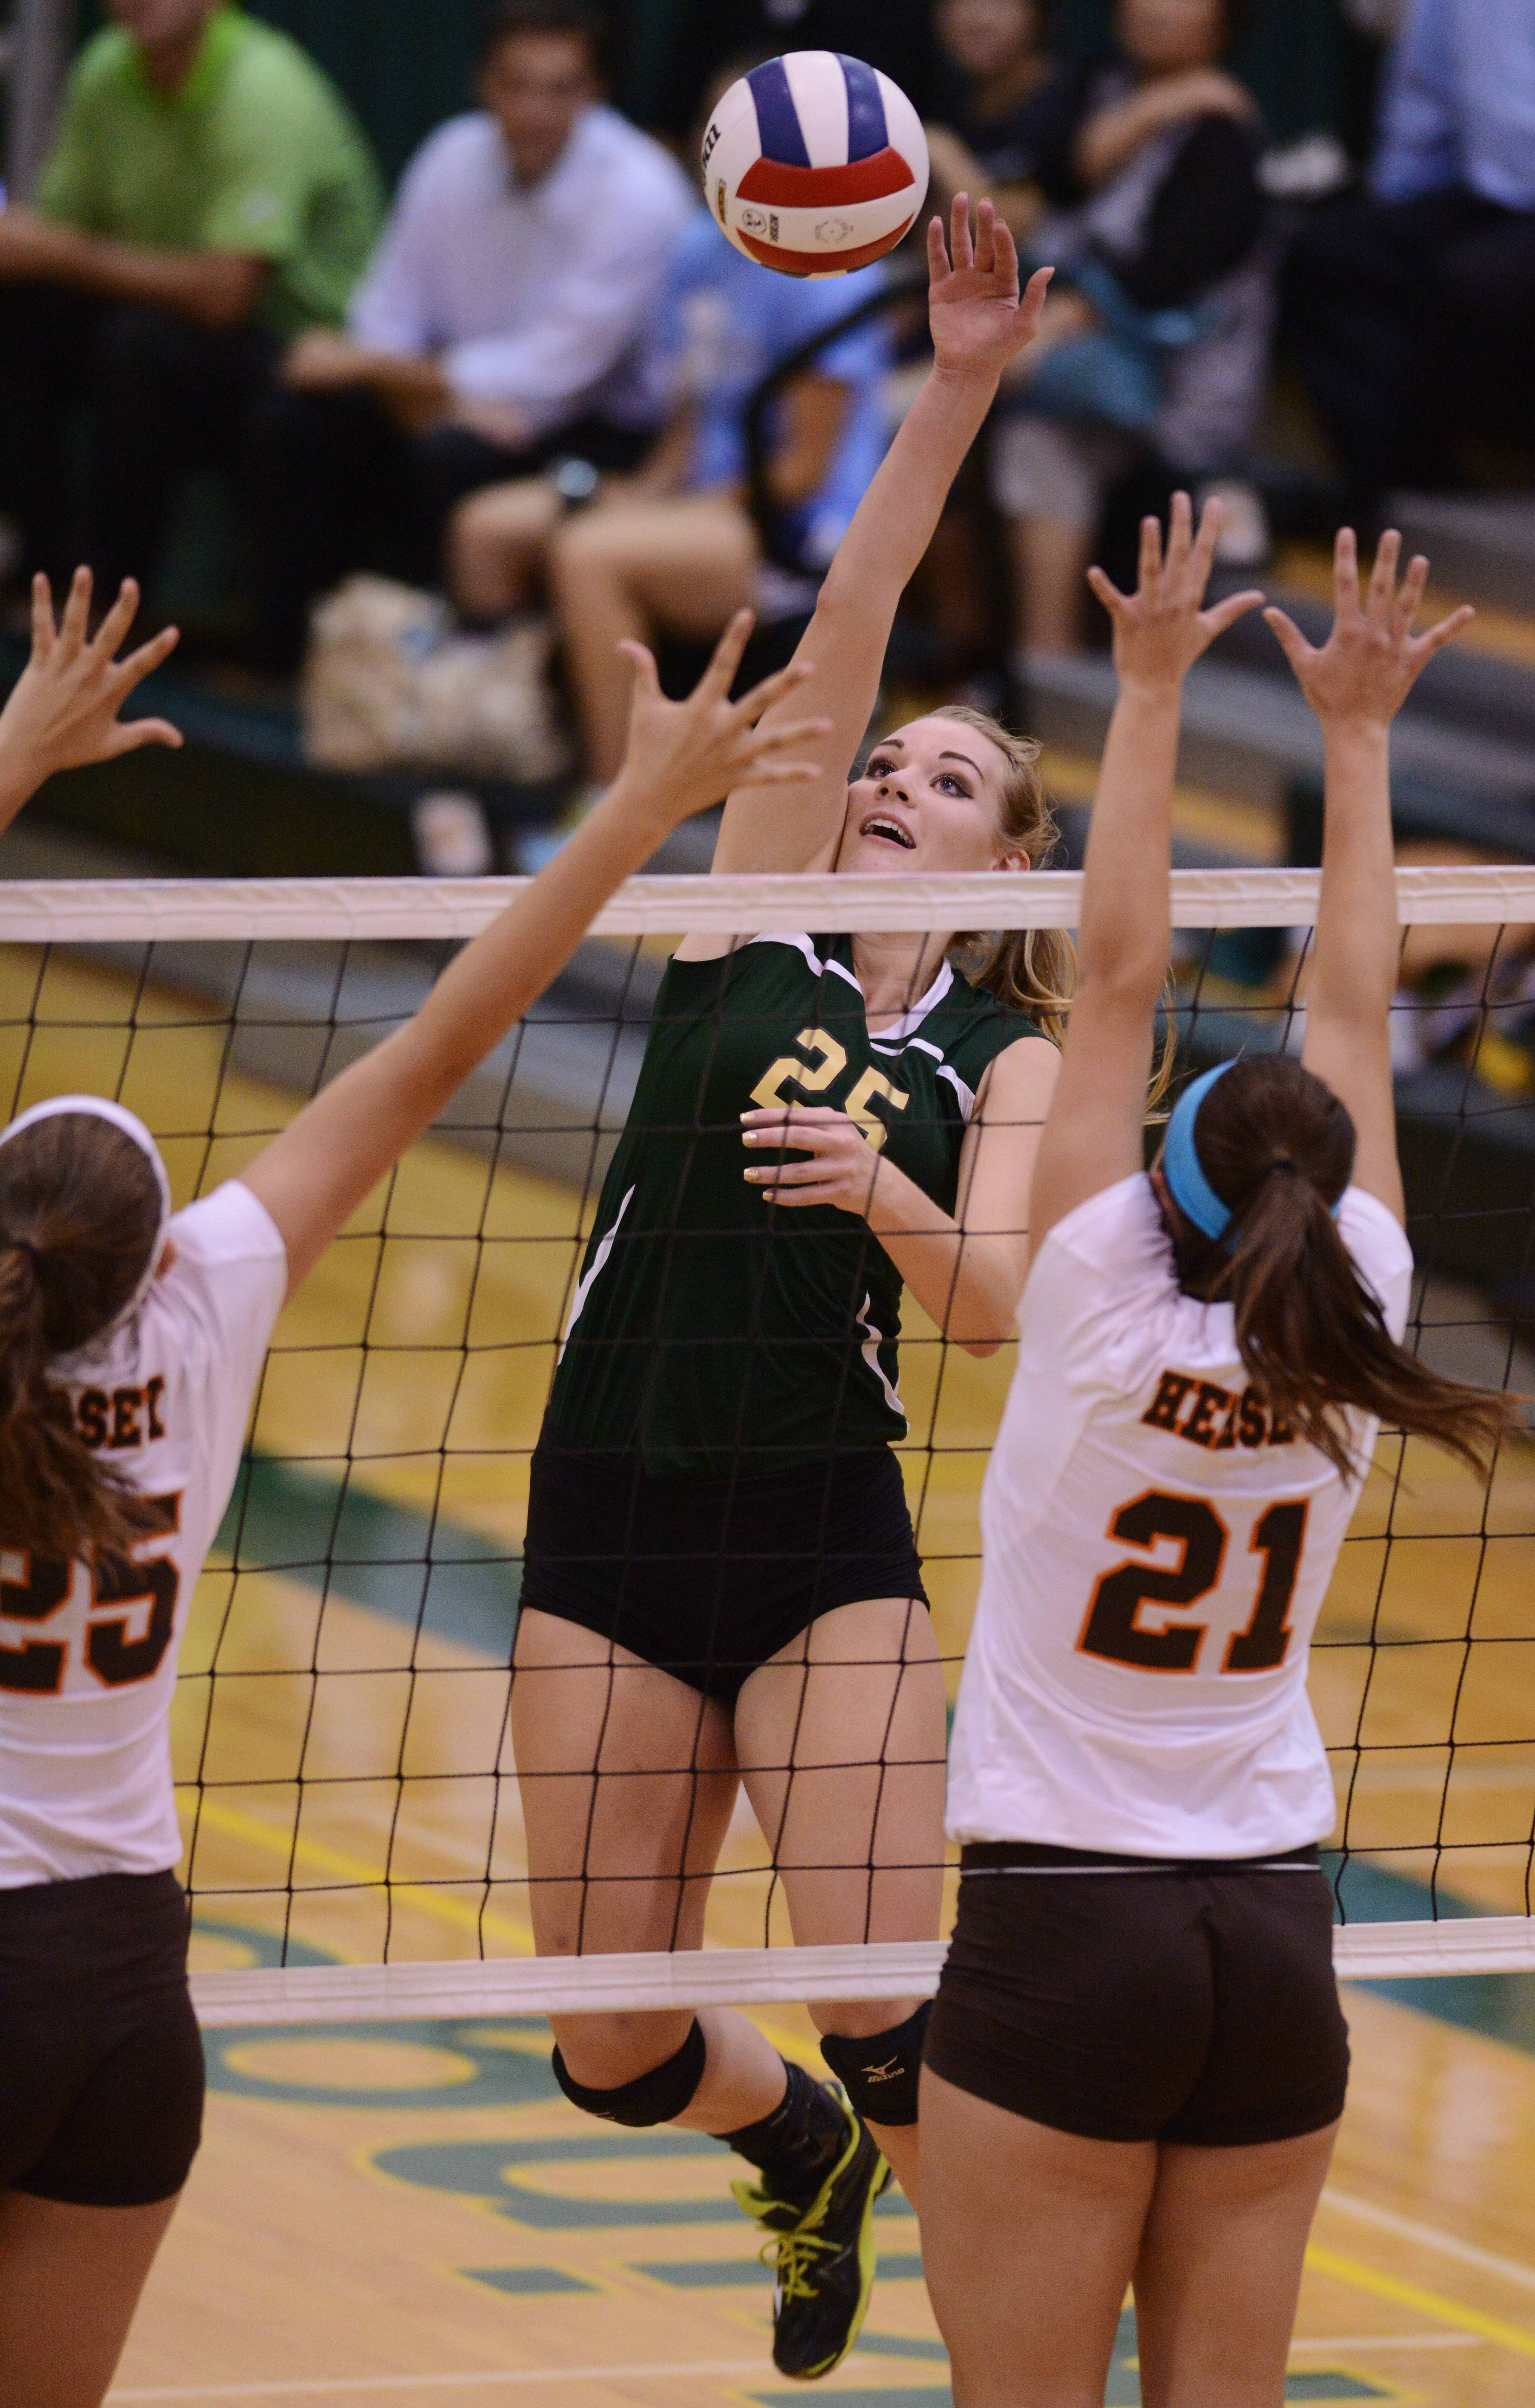 Fremd's Lane Hindenburg leaps for a kill as Hersey's Gabrielle Olhava, left, and Courtney Stedman try to block the ball at the net during Tuesday's volleyball match in Palatine.